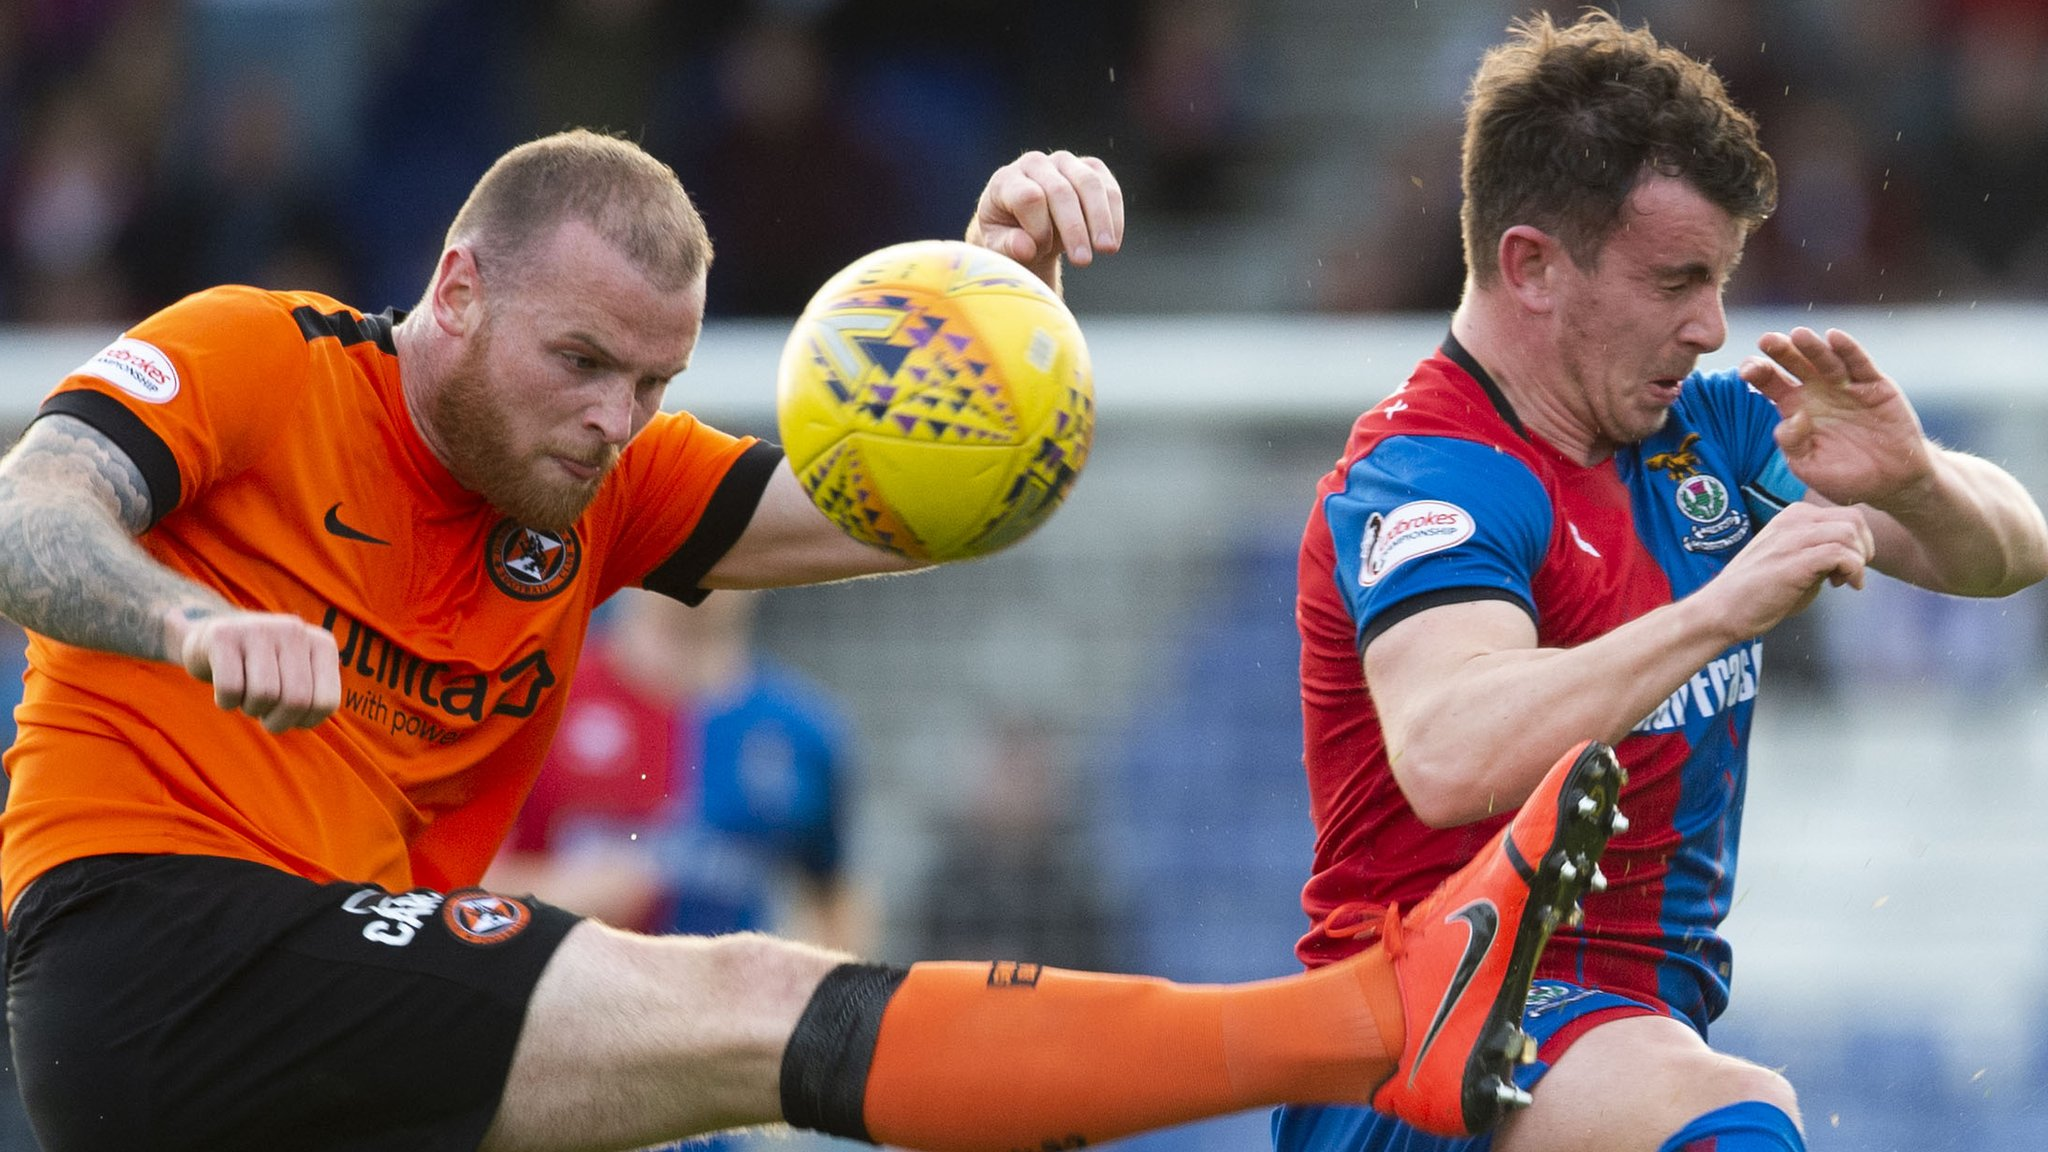 Dundee United v Inverness CT: Highlanders confident despite losing first leg at home